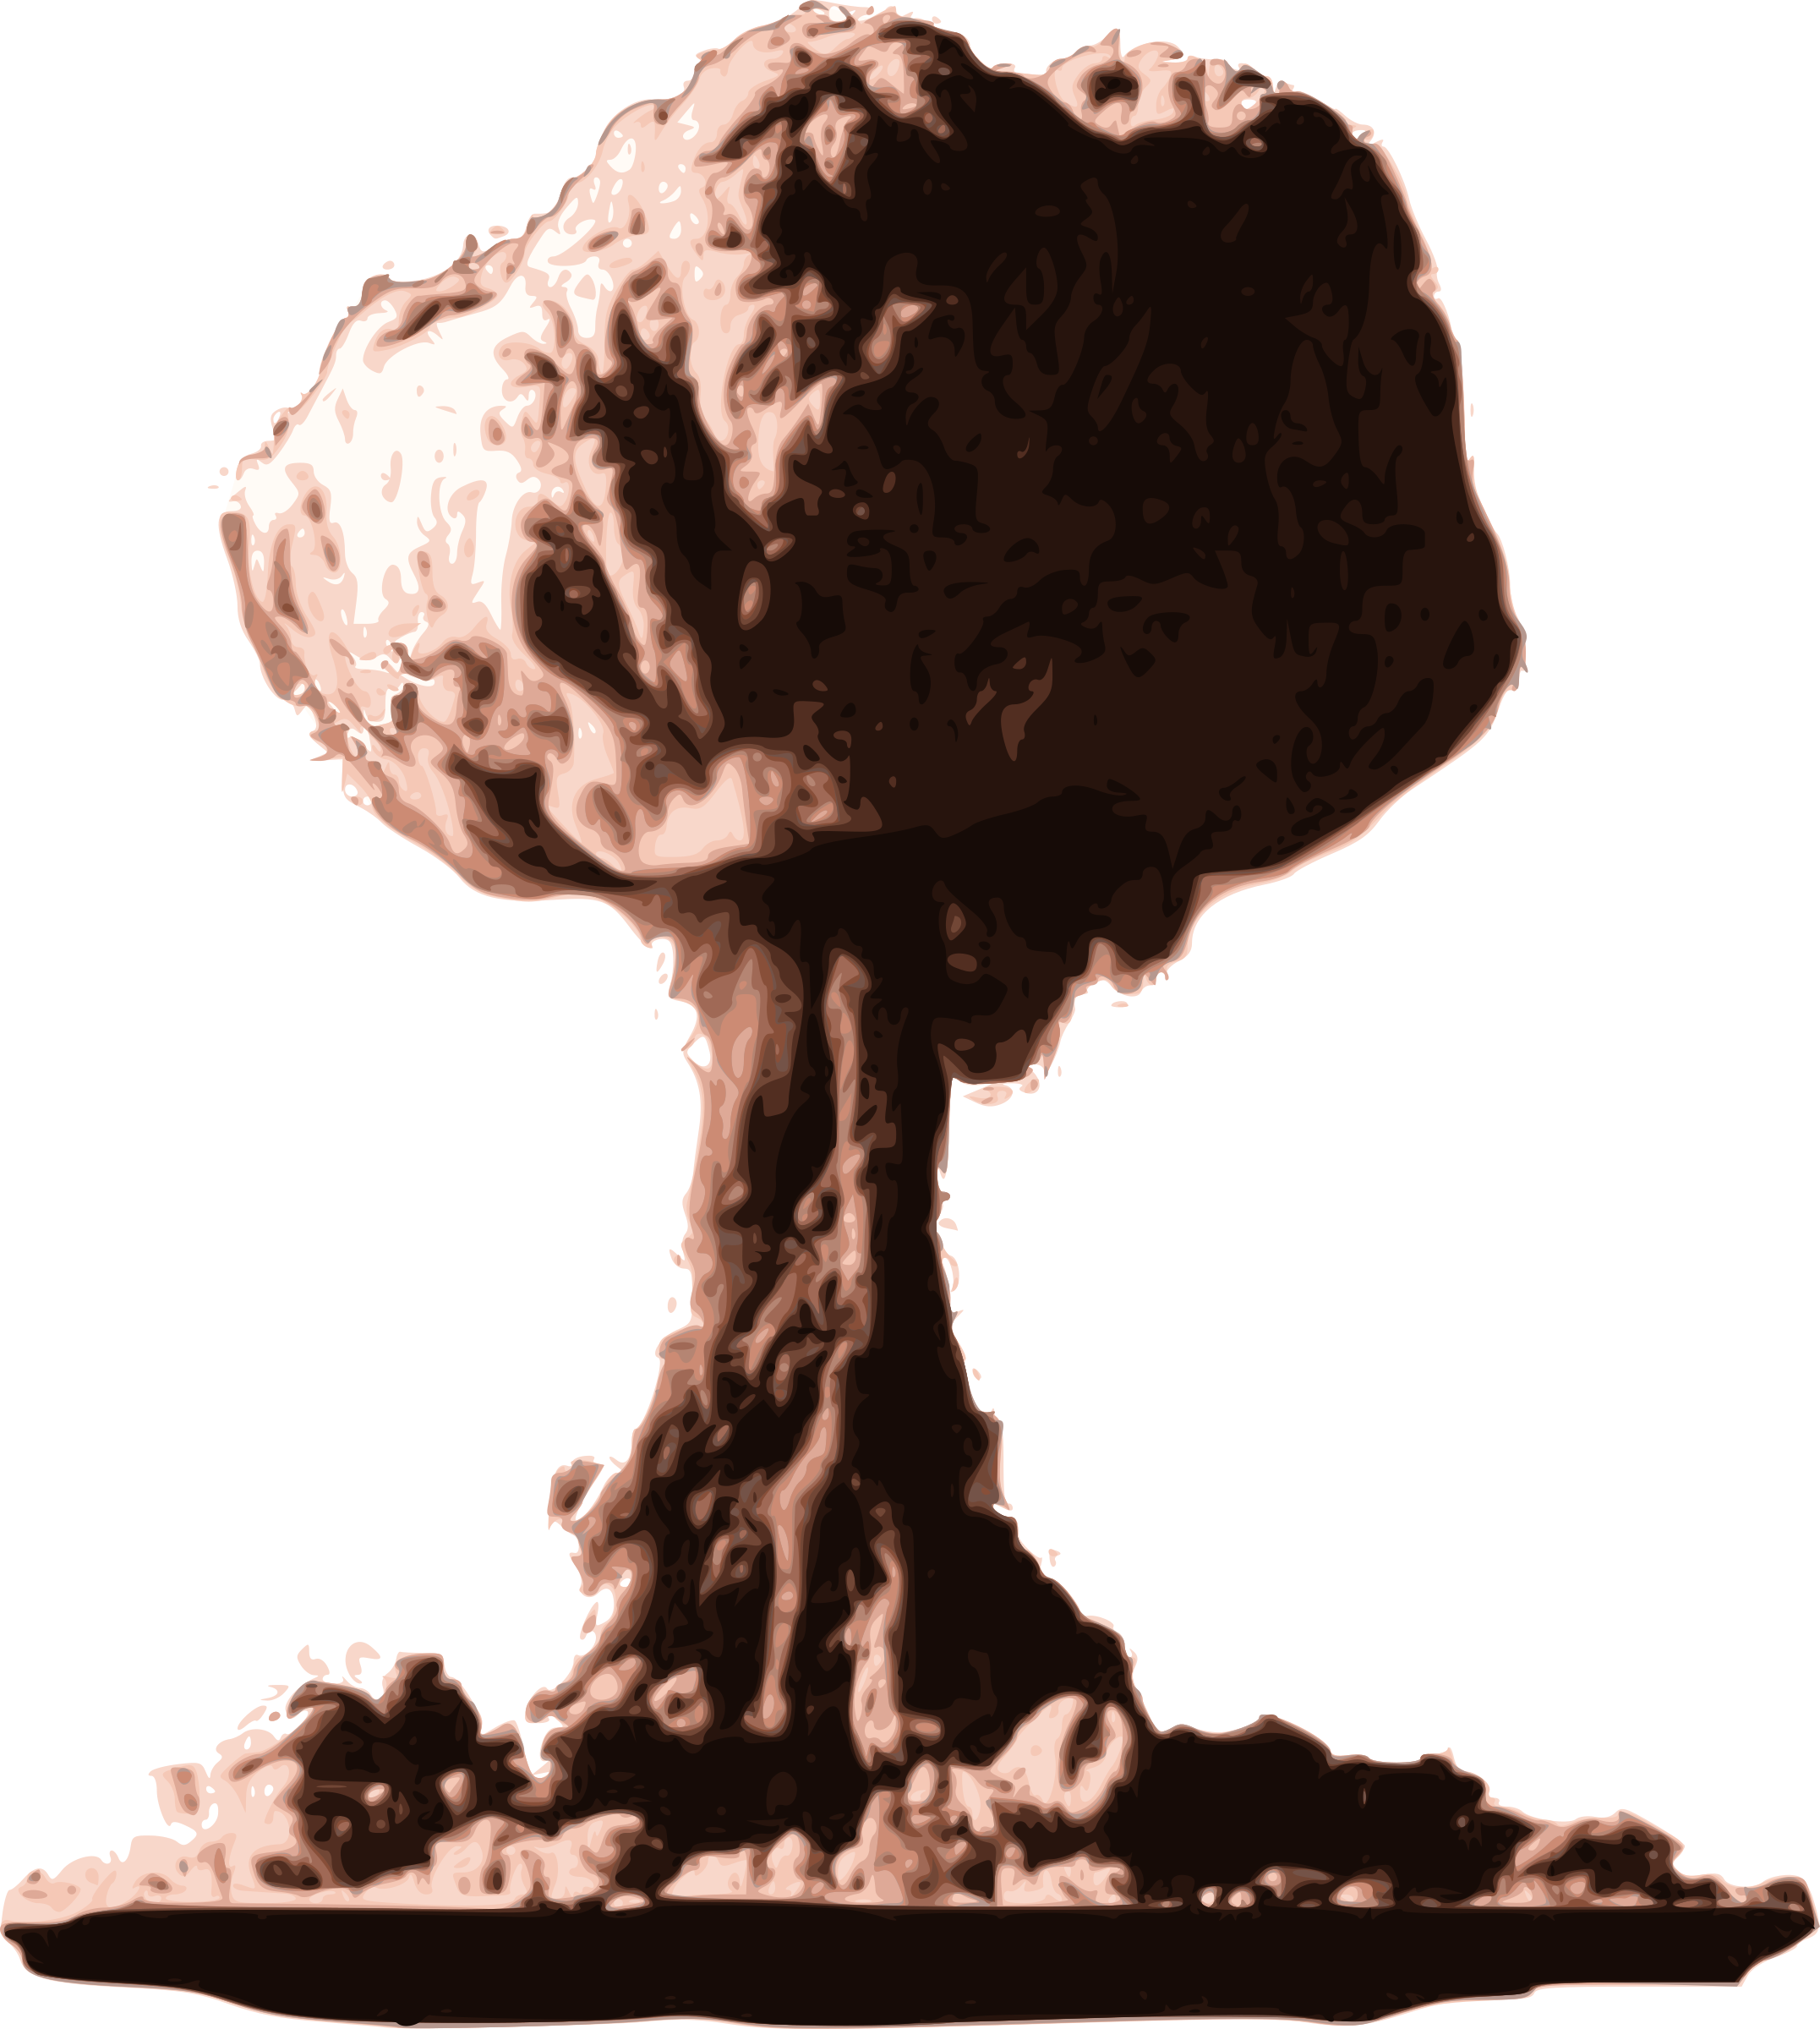 uploads nuclear explosion nuclear explosion PNG10 5